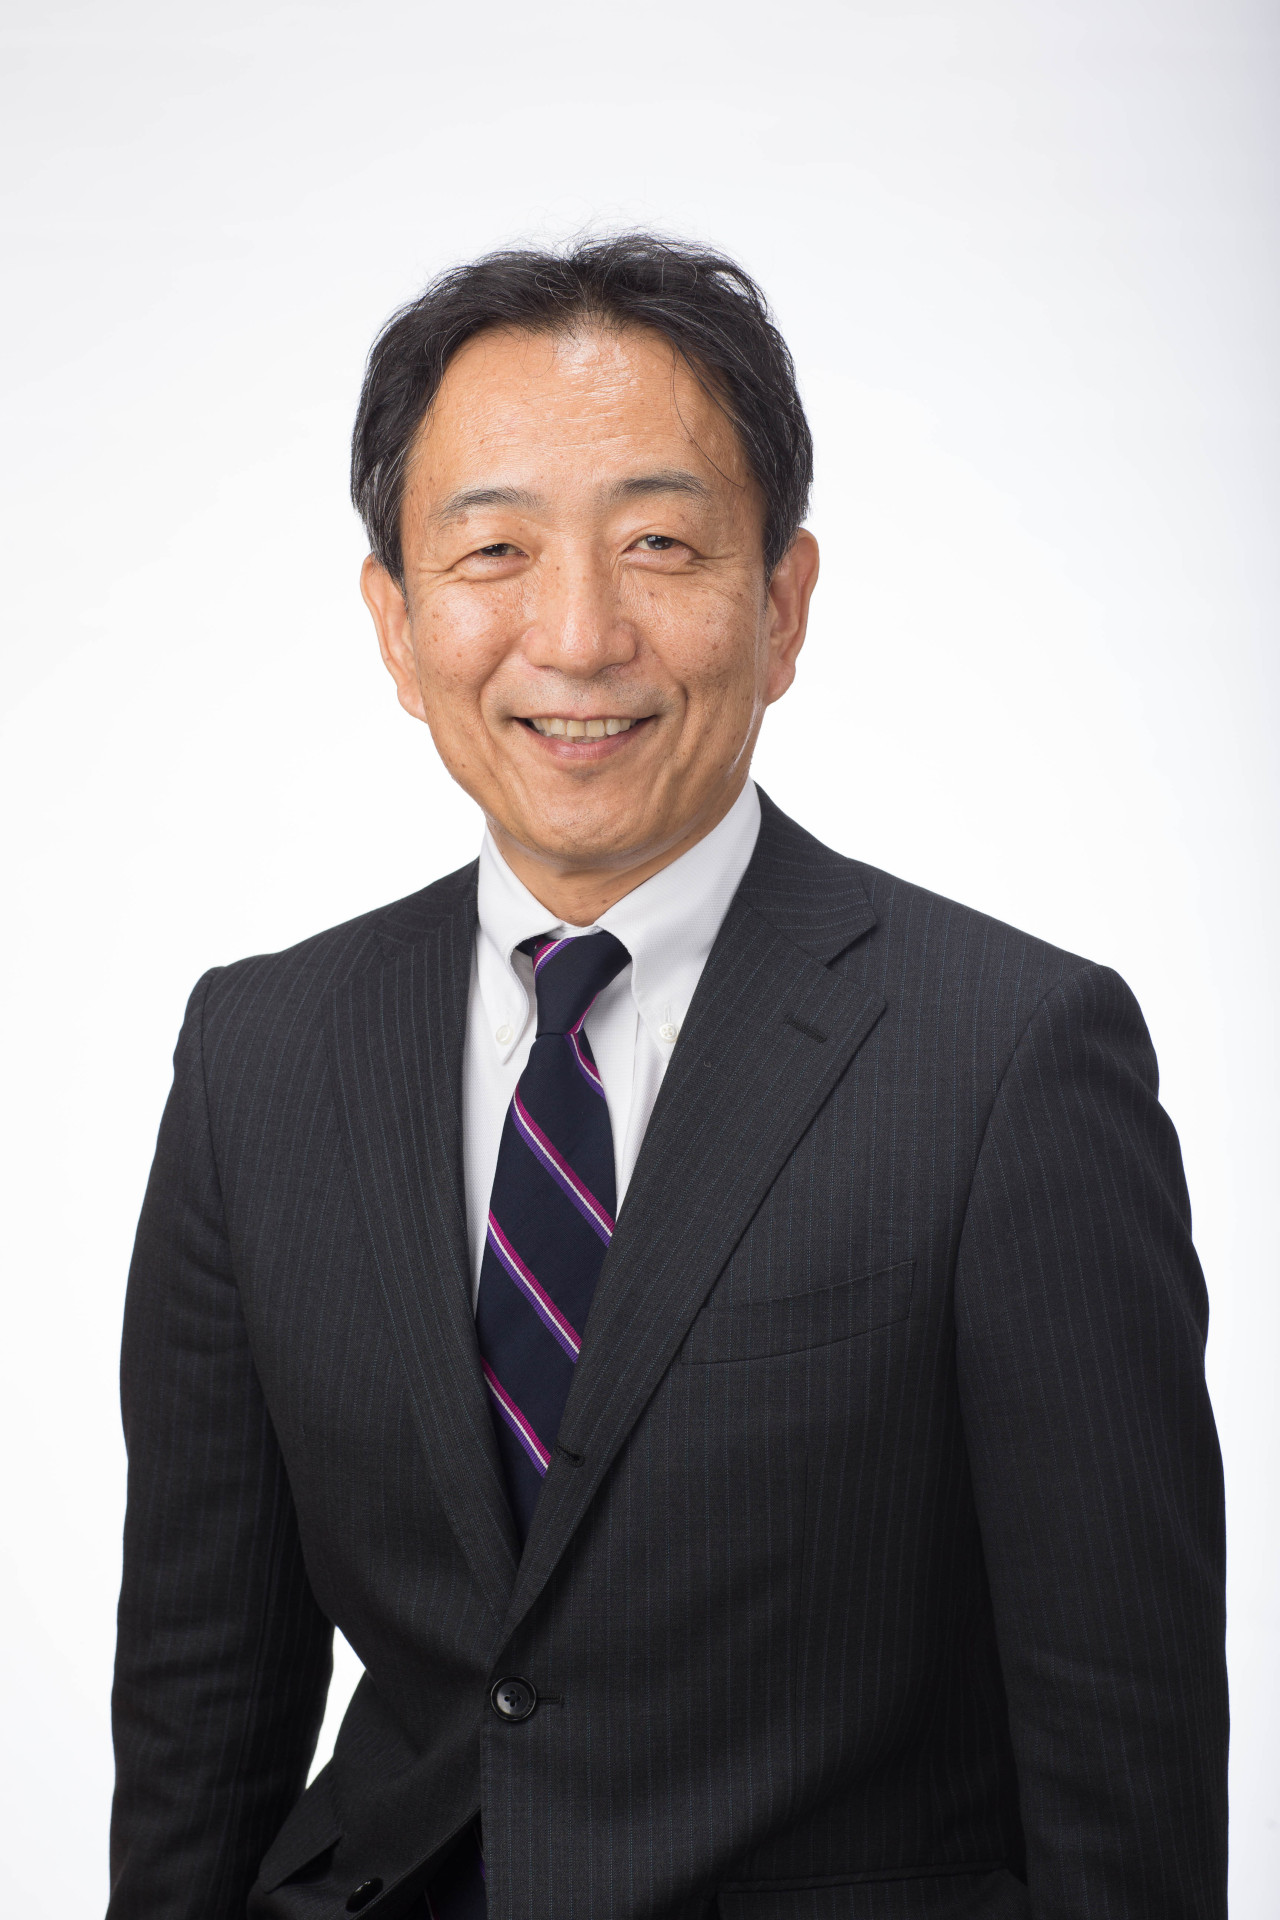 Hiroto Mitsugi, assistant director-general of the Forestry Department Food and Agriculture Organization of the United Nations